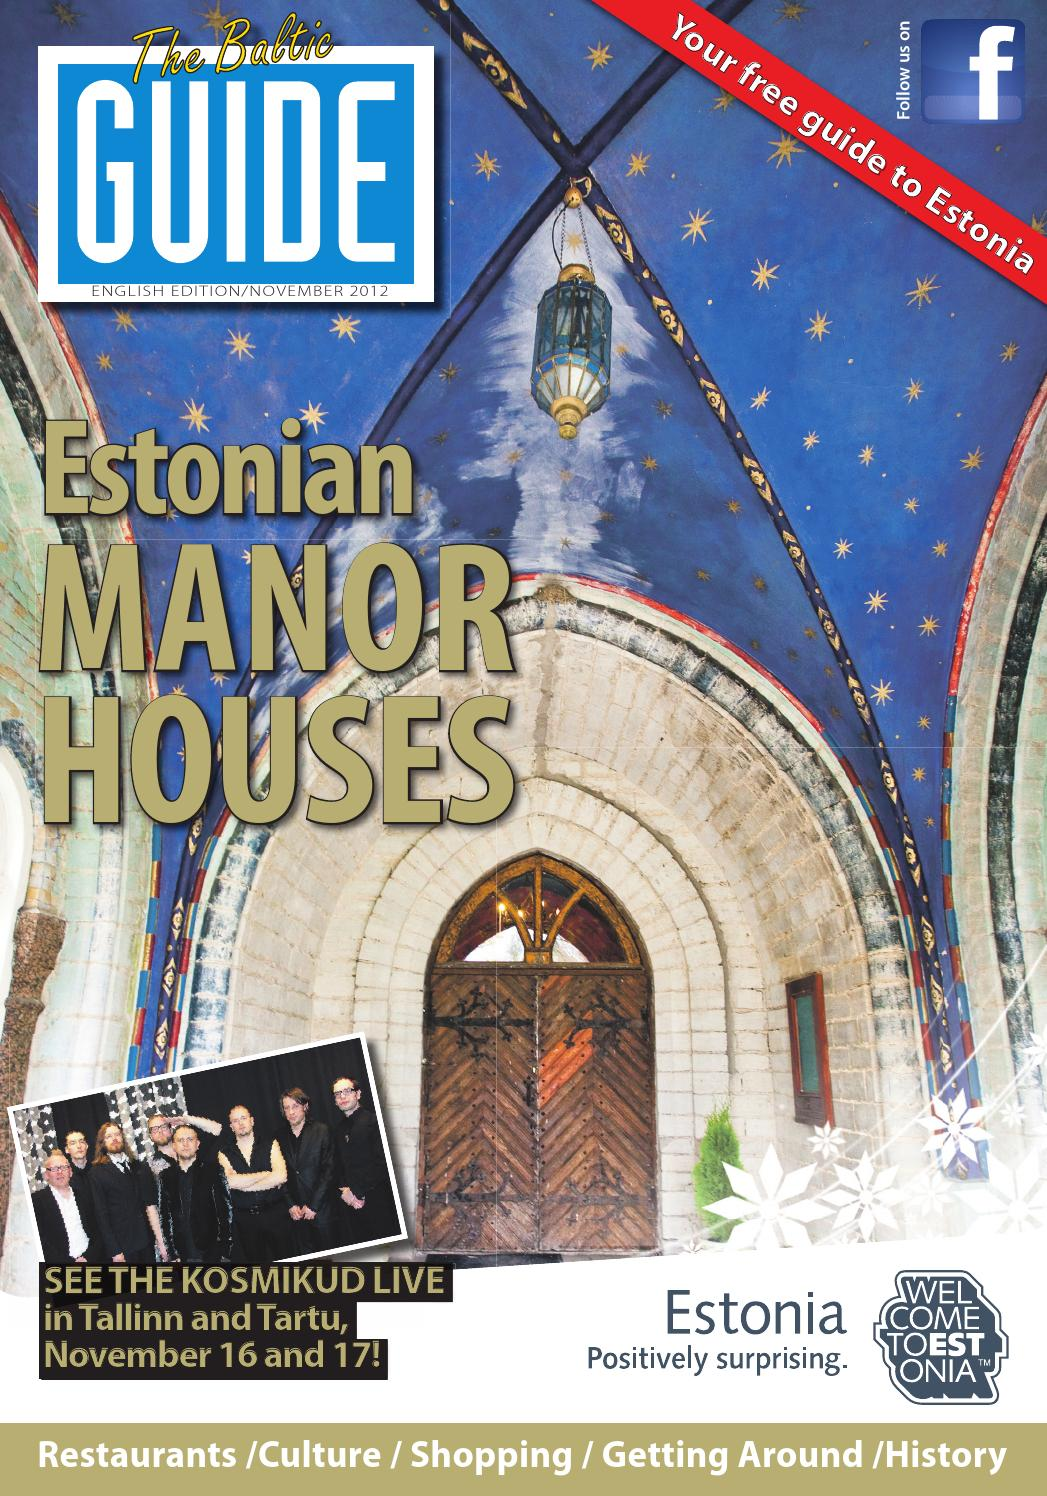 b1eef0dd597 The Baltic Guide ENG November 2012 by The Baltic Guide - issuu